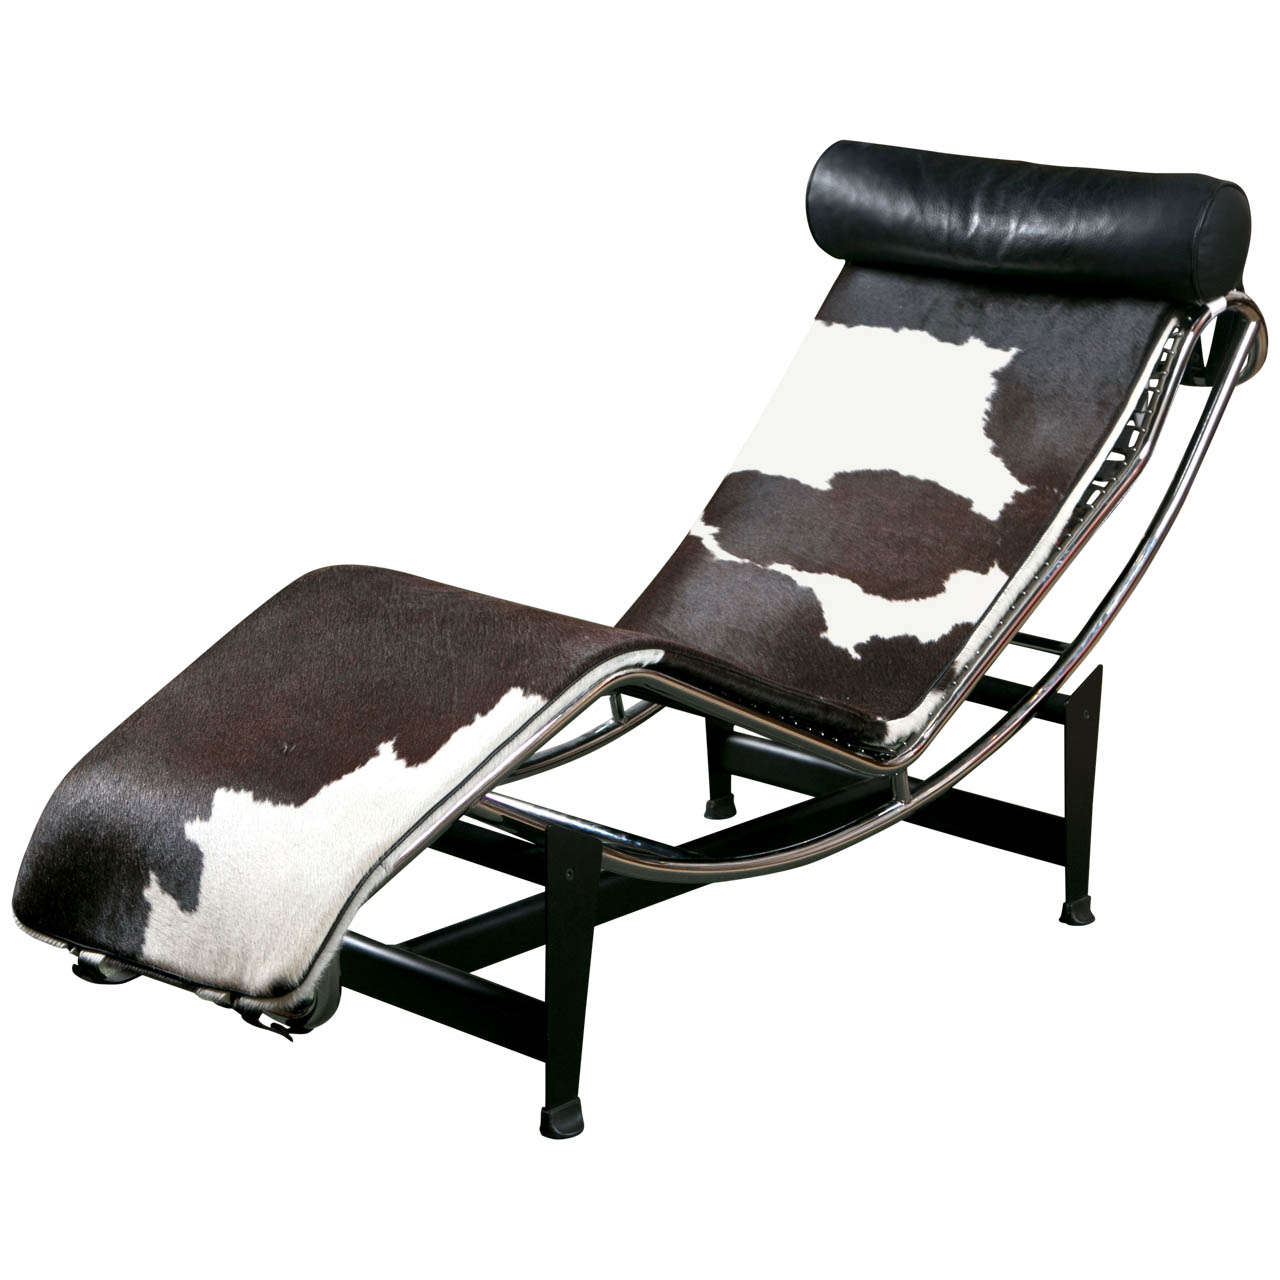 Le corbusier chaise longue at 1stdibs for Chaise longue le corbusier cad